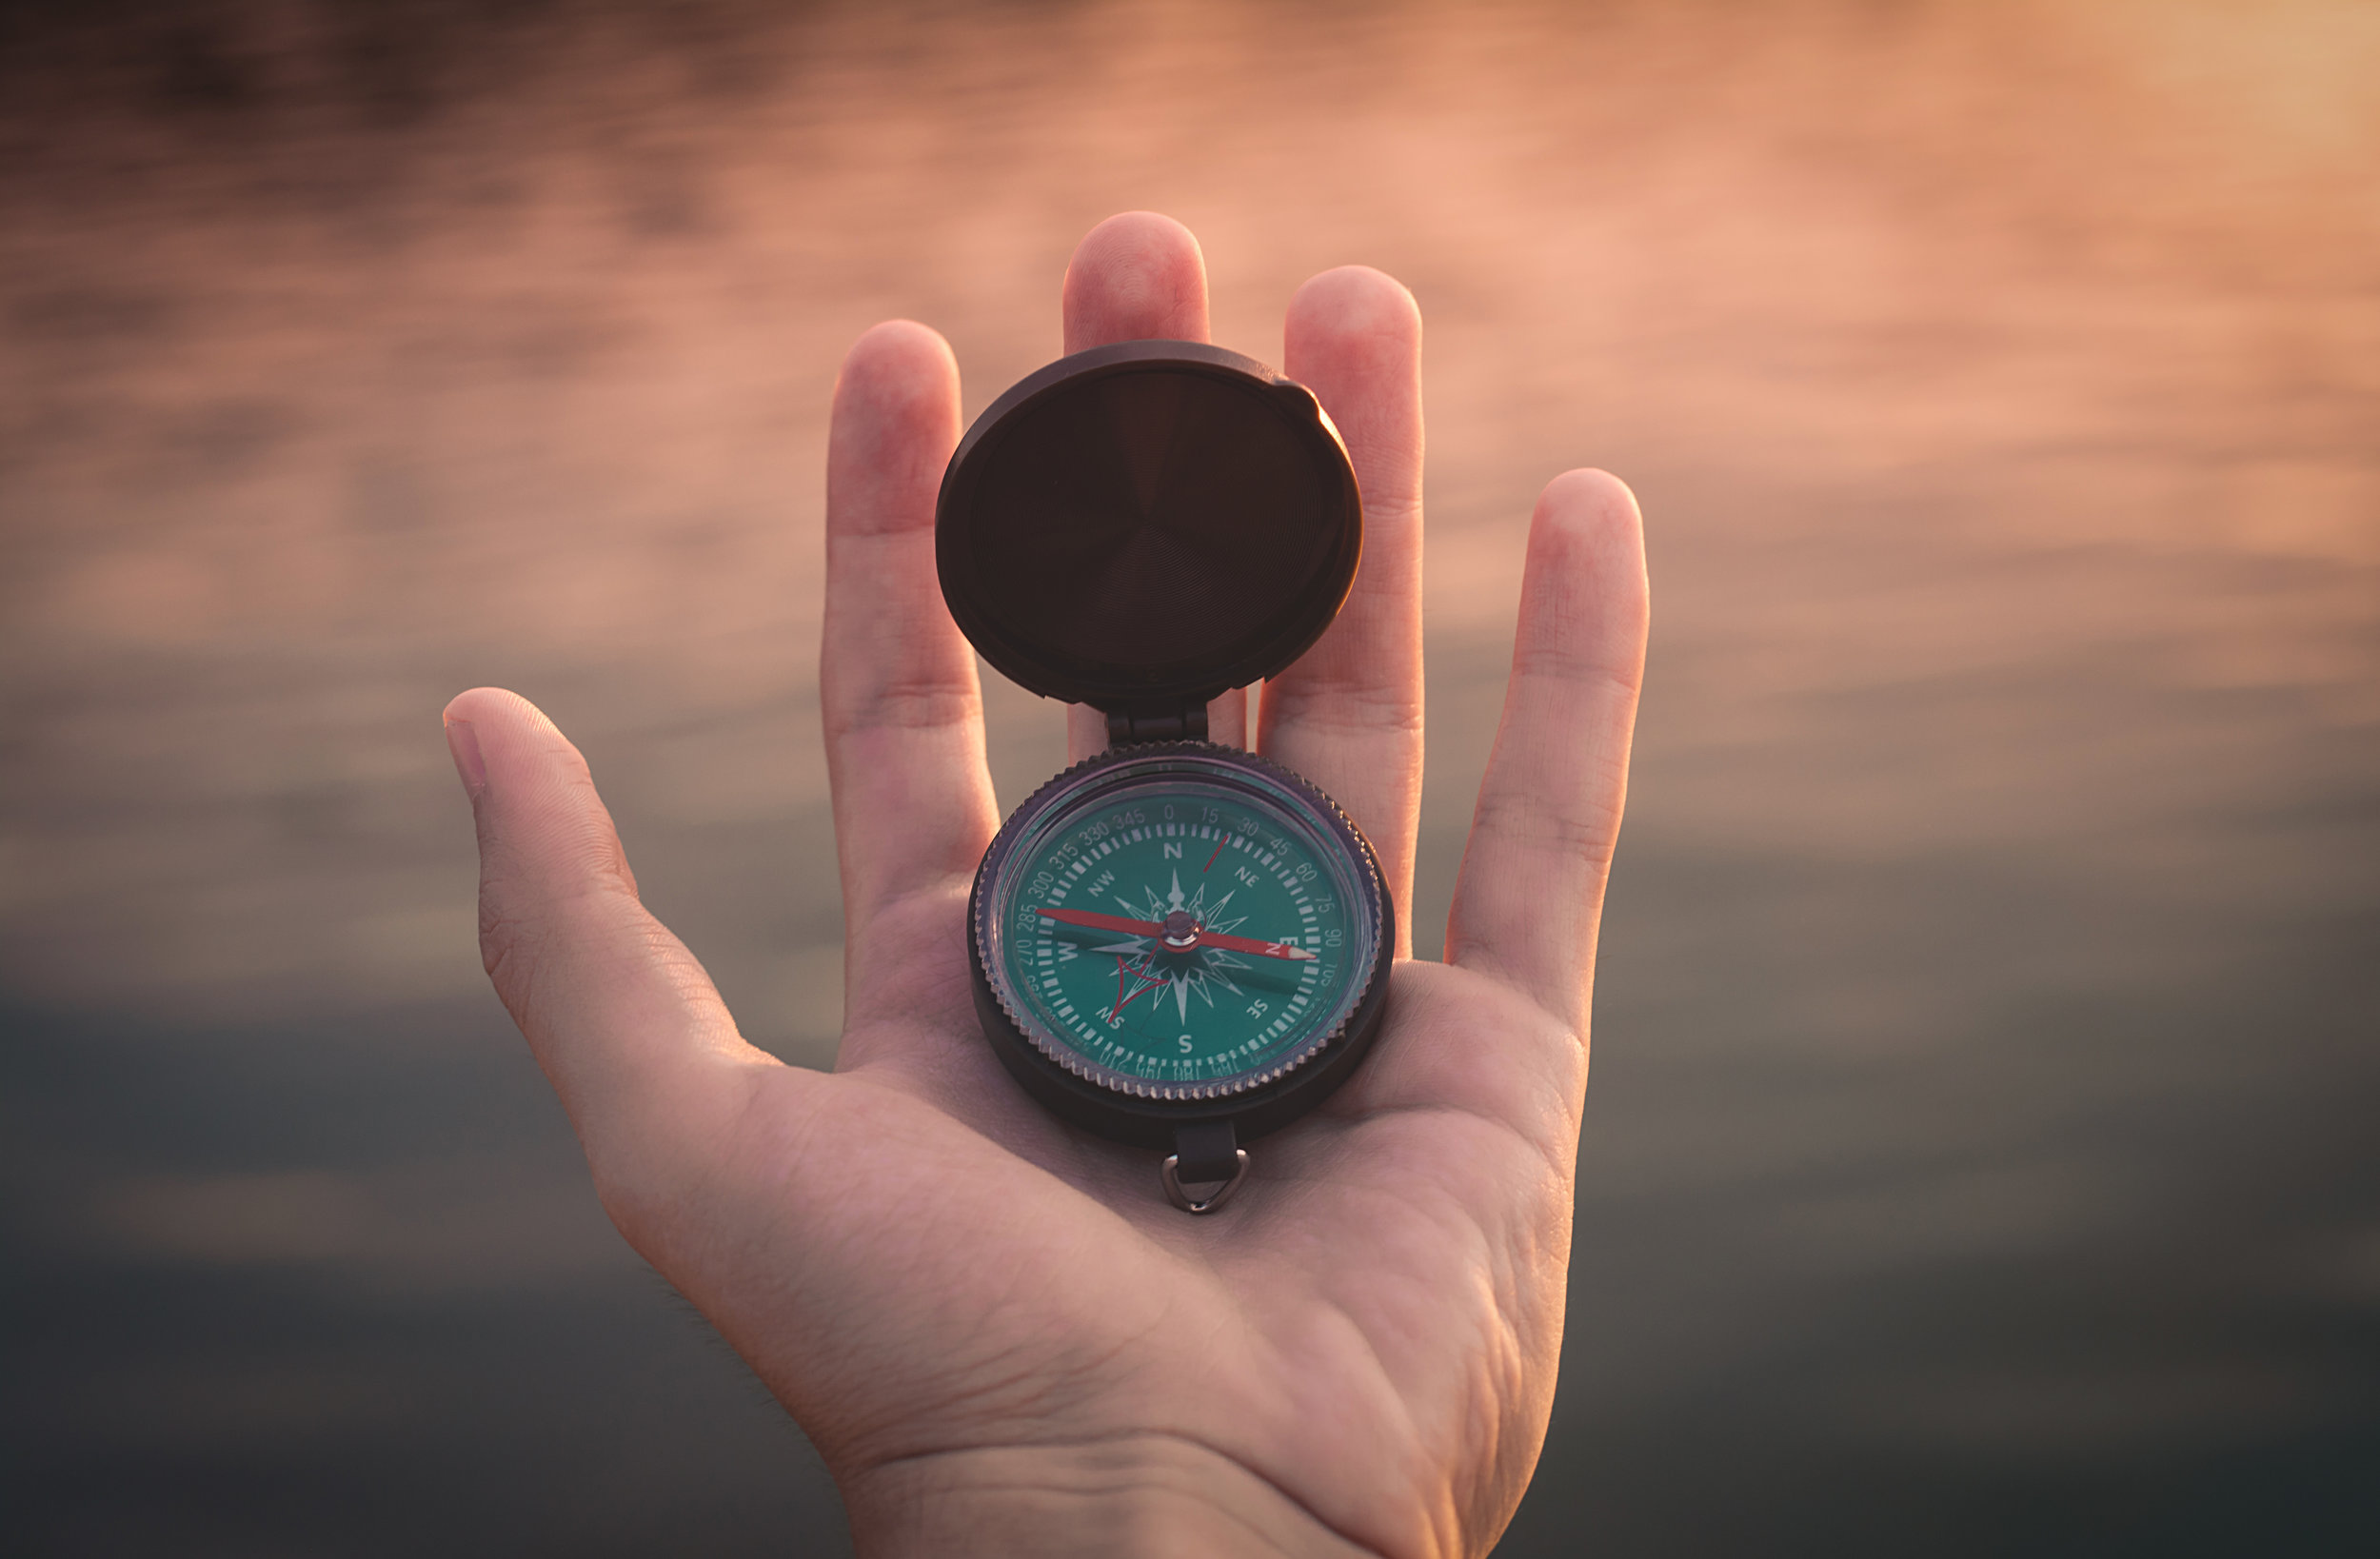 NAVIGATION - Learn how to navigate underwater, using both a compass and natural navigation.